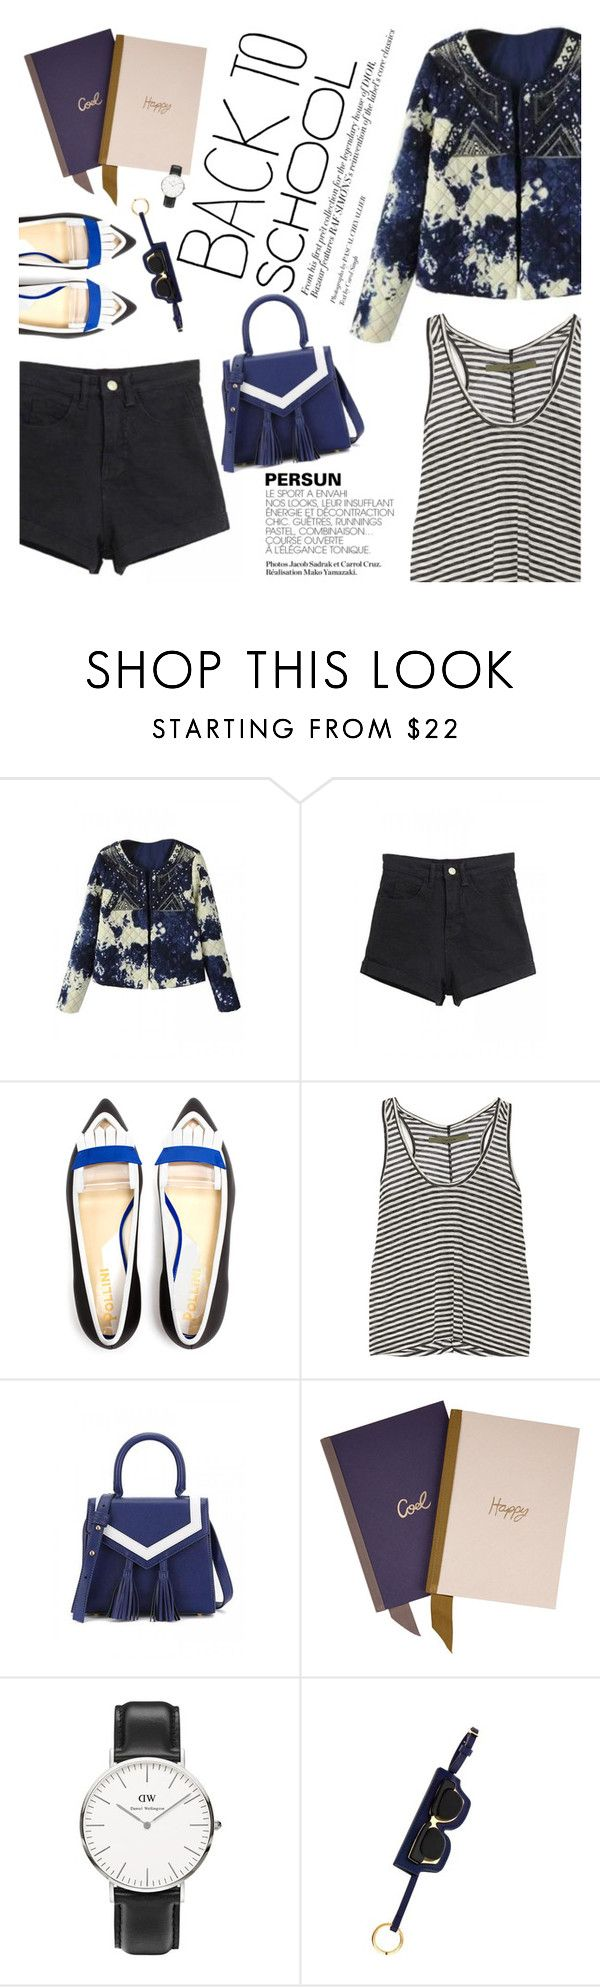 """""""back to school"""" by punnky ❤ liked on Polyvore featuring Pollini, Enza Costa, Lanvin, Daniel Wellington and Marni"""